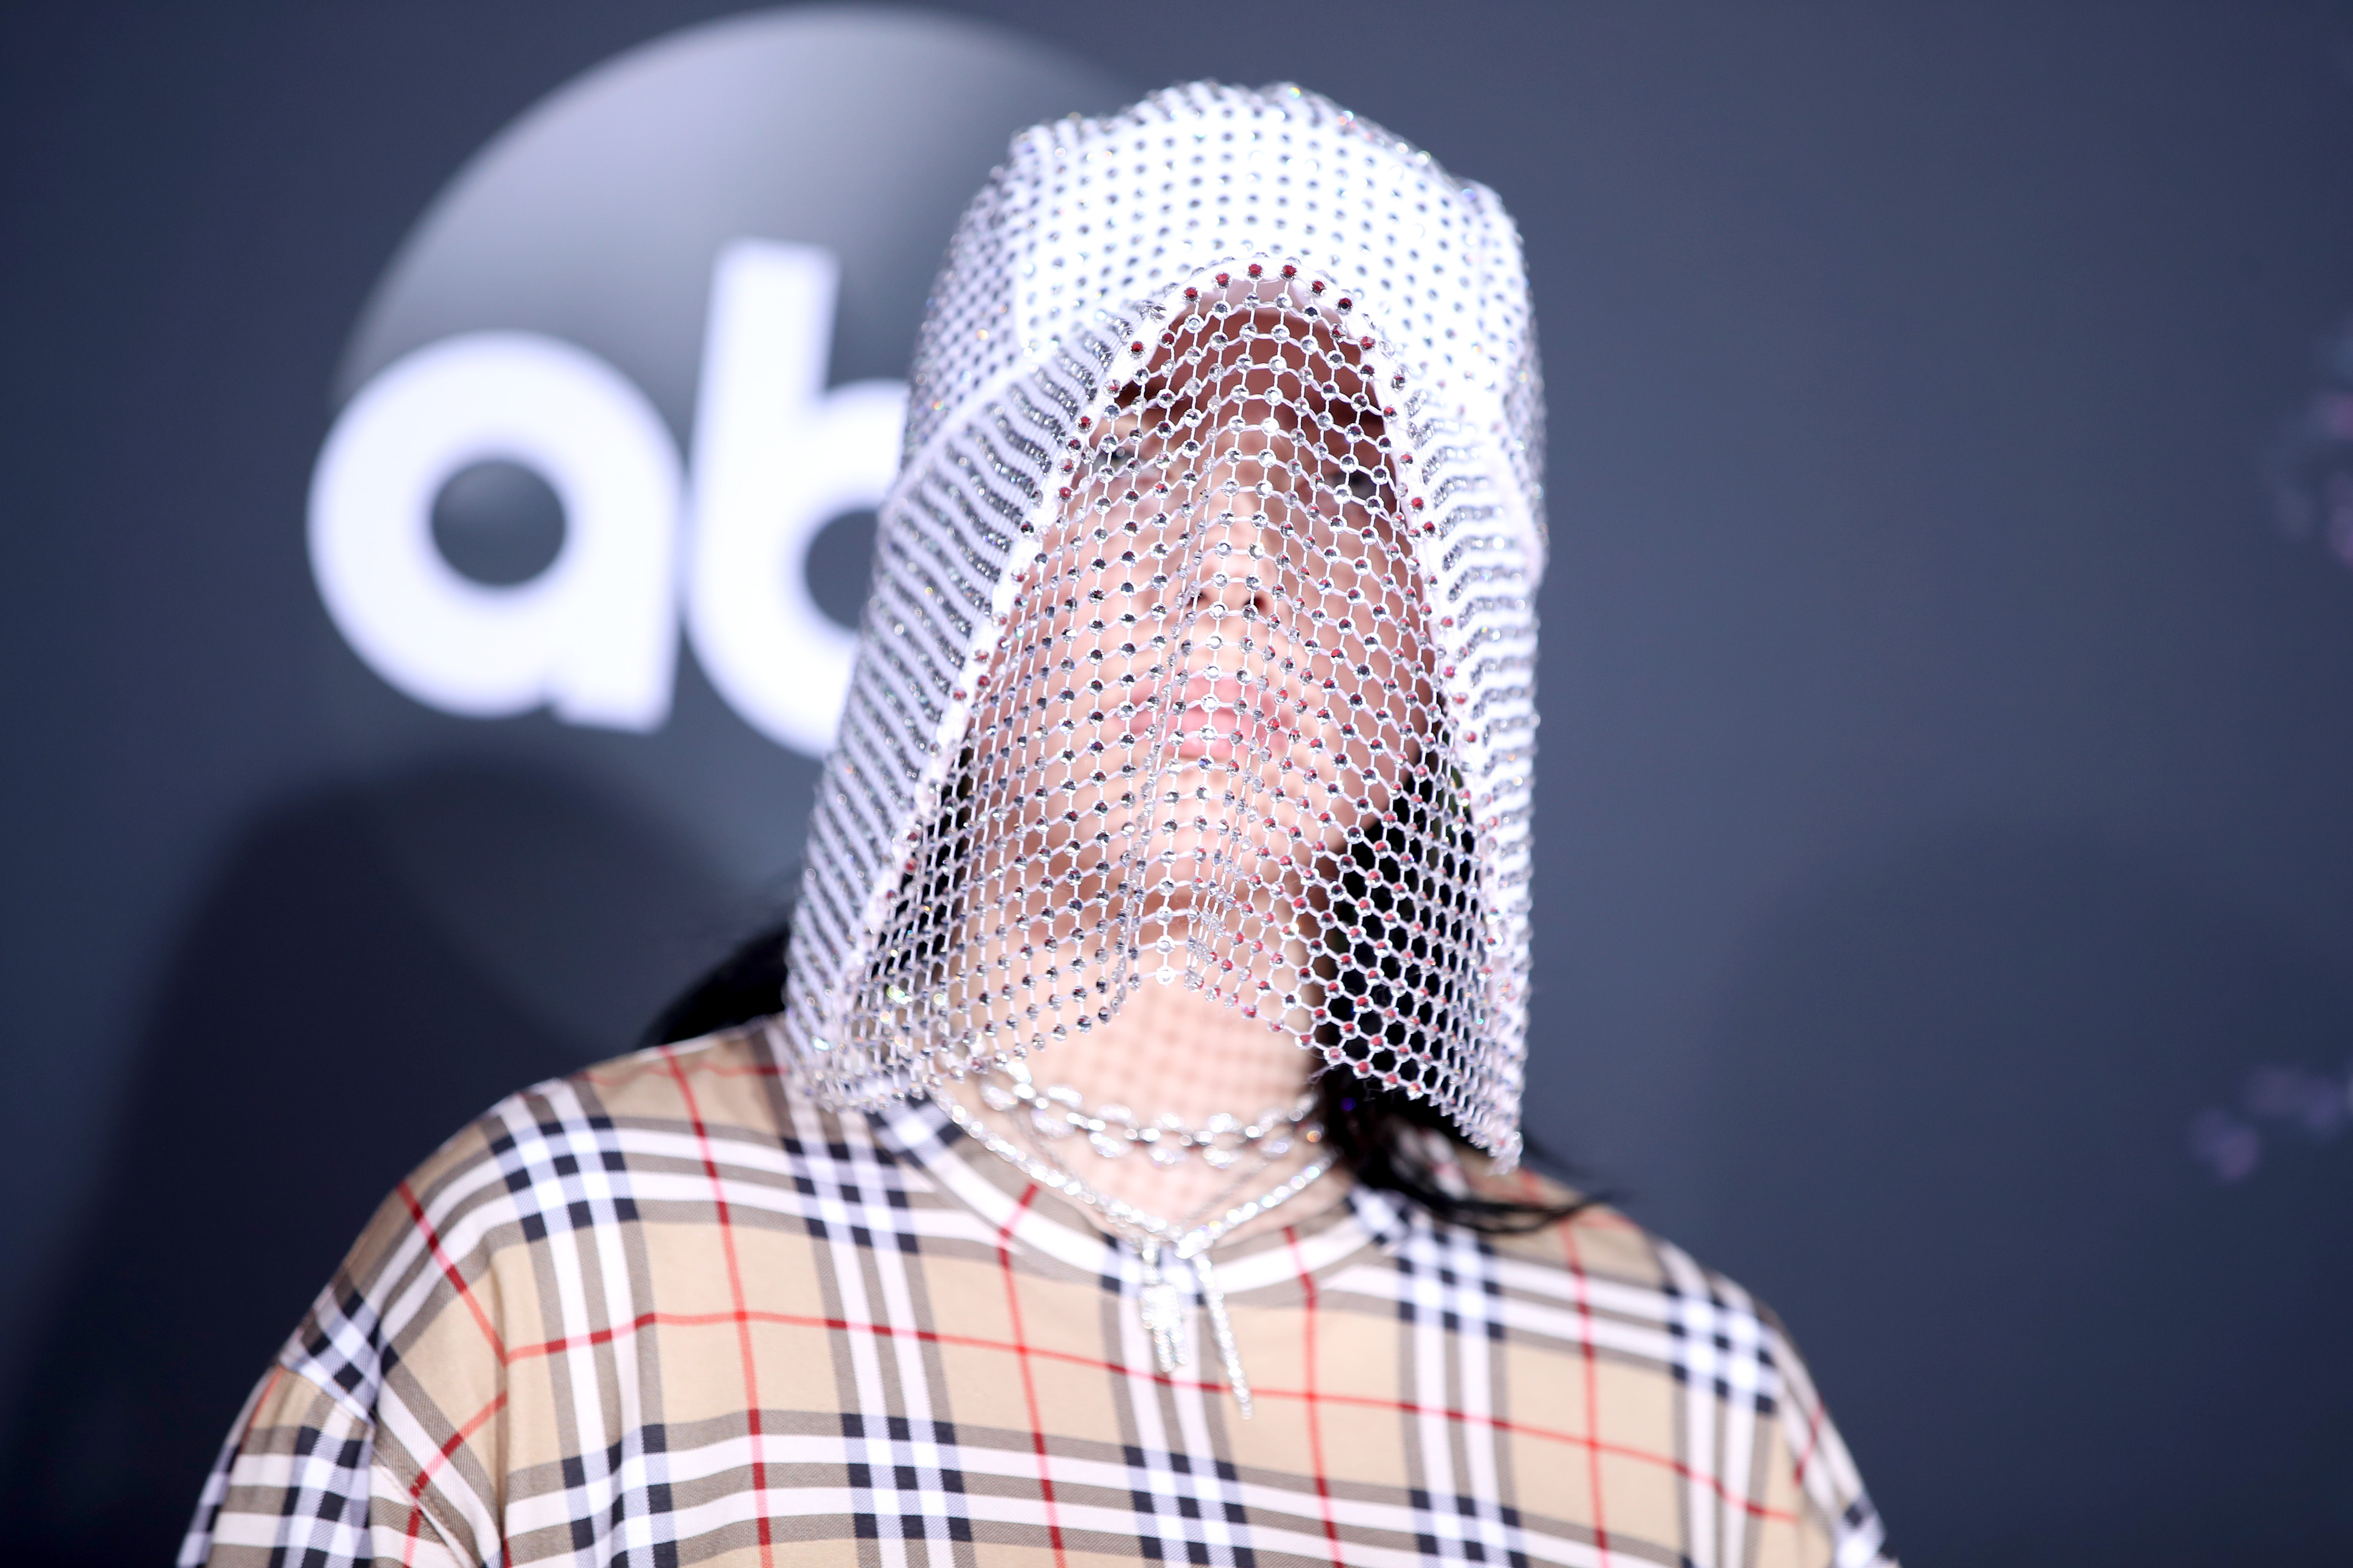 LOS ANGELES, CALIFORNIA - NOVEMBER 24: Billie Eilish attends the 2019 American Music Awards at Microsoft Theater on November 24, 2019 in Los Angeles, California. (Photo by Rich Fury/Getty Images)